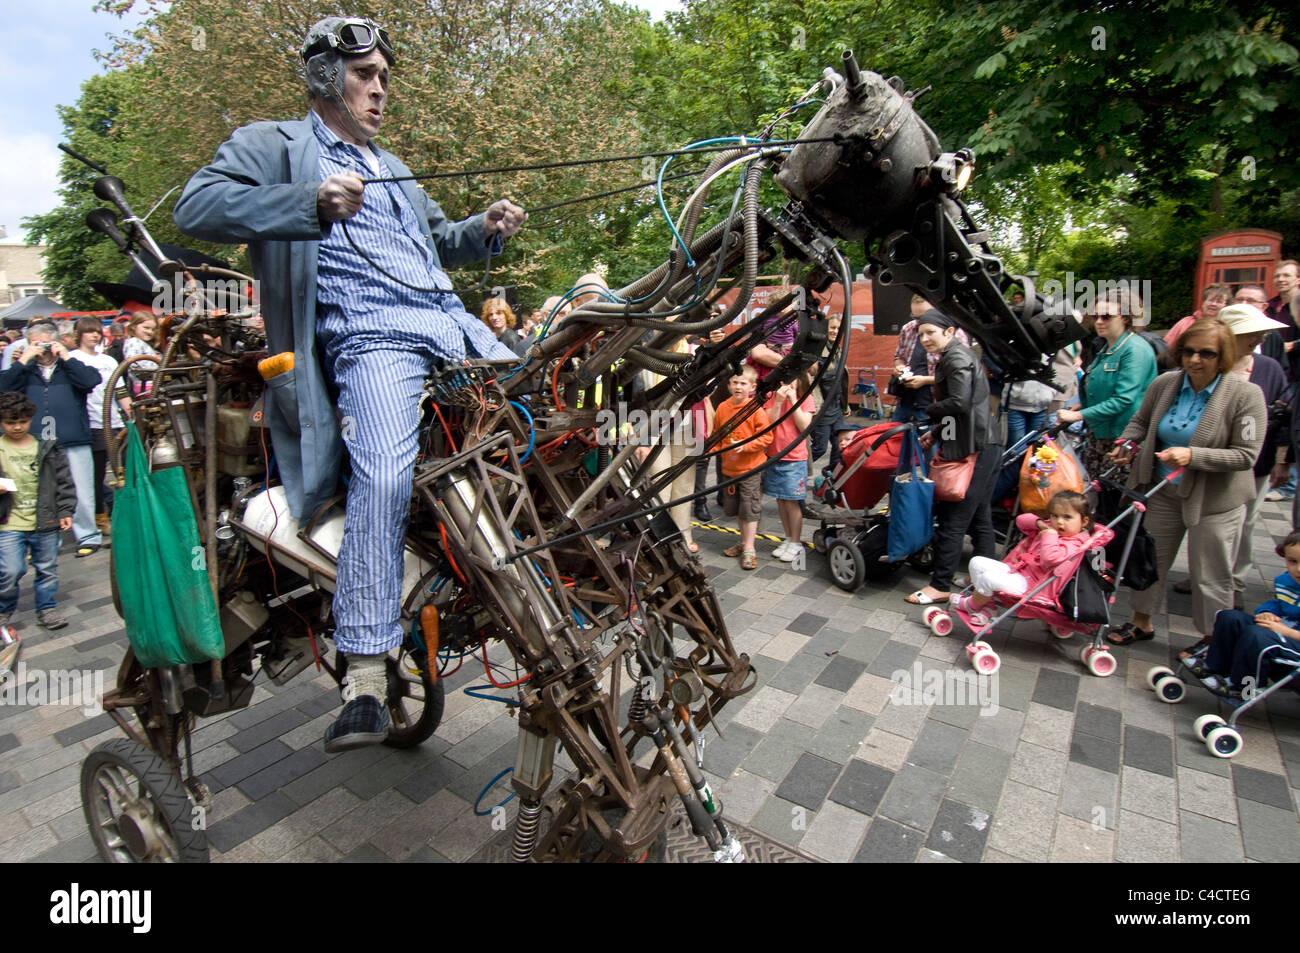 A street entertainer rides his iron horse during the 2011 Brighton Festival Fringe - Stock Image